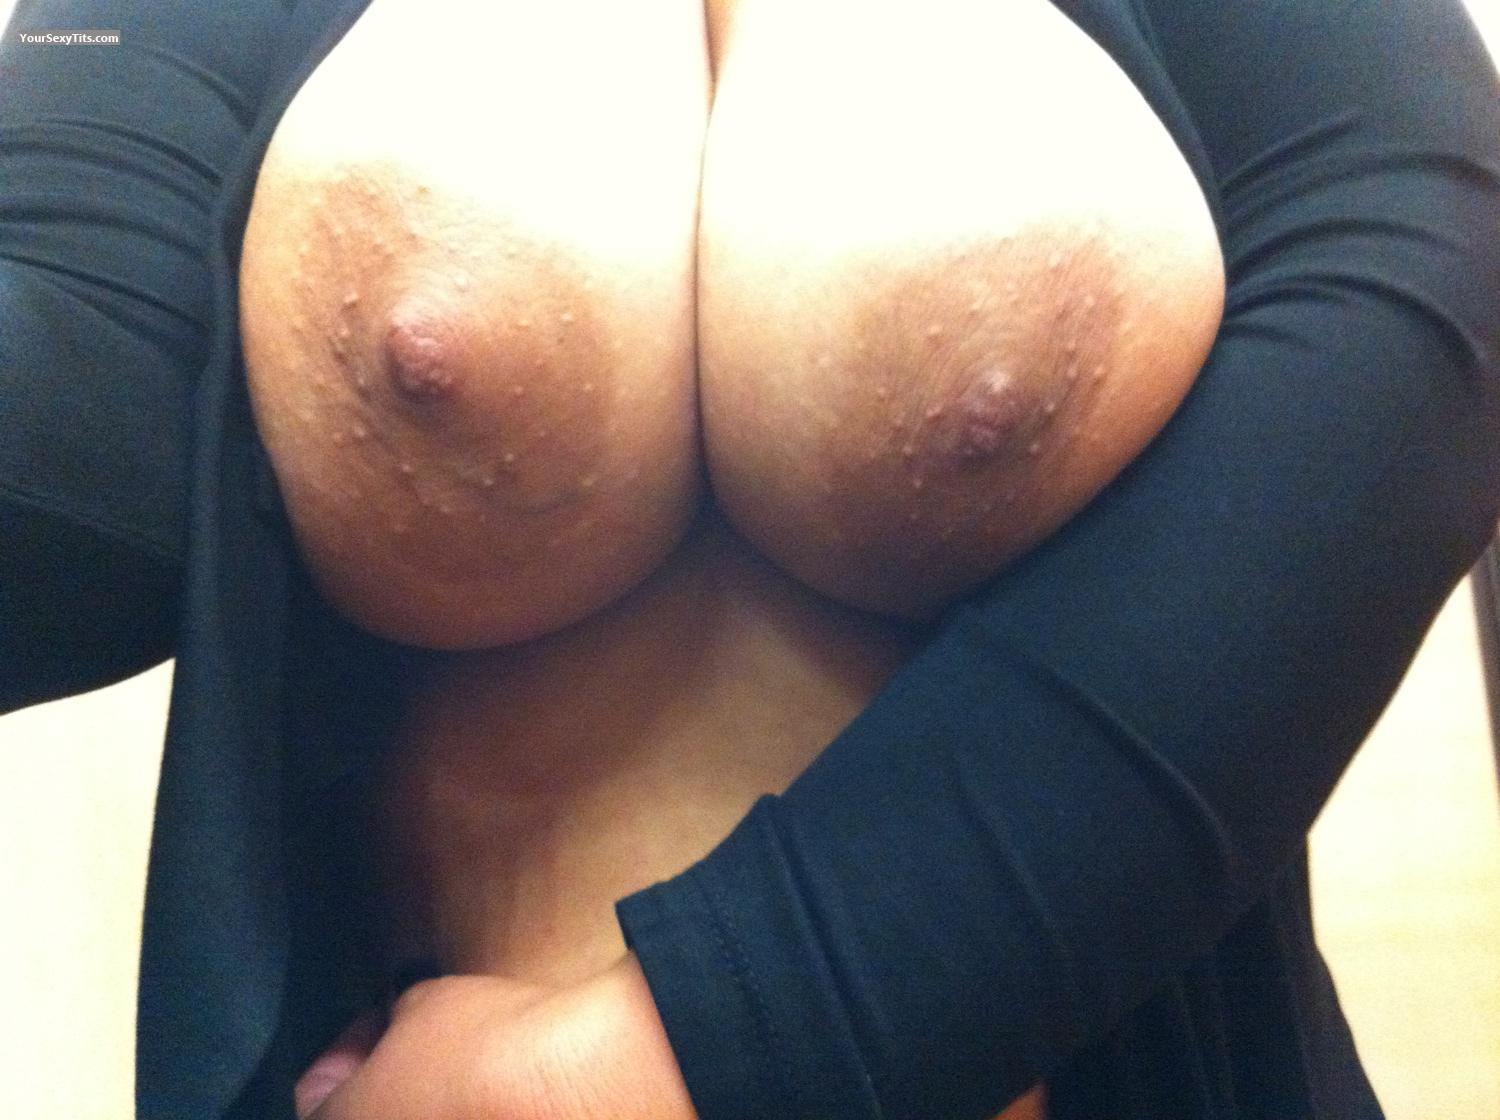 Tit Flash: My Big Tits By IPhone (Selfie) - Lady Dee from United States